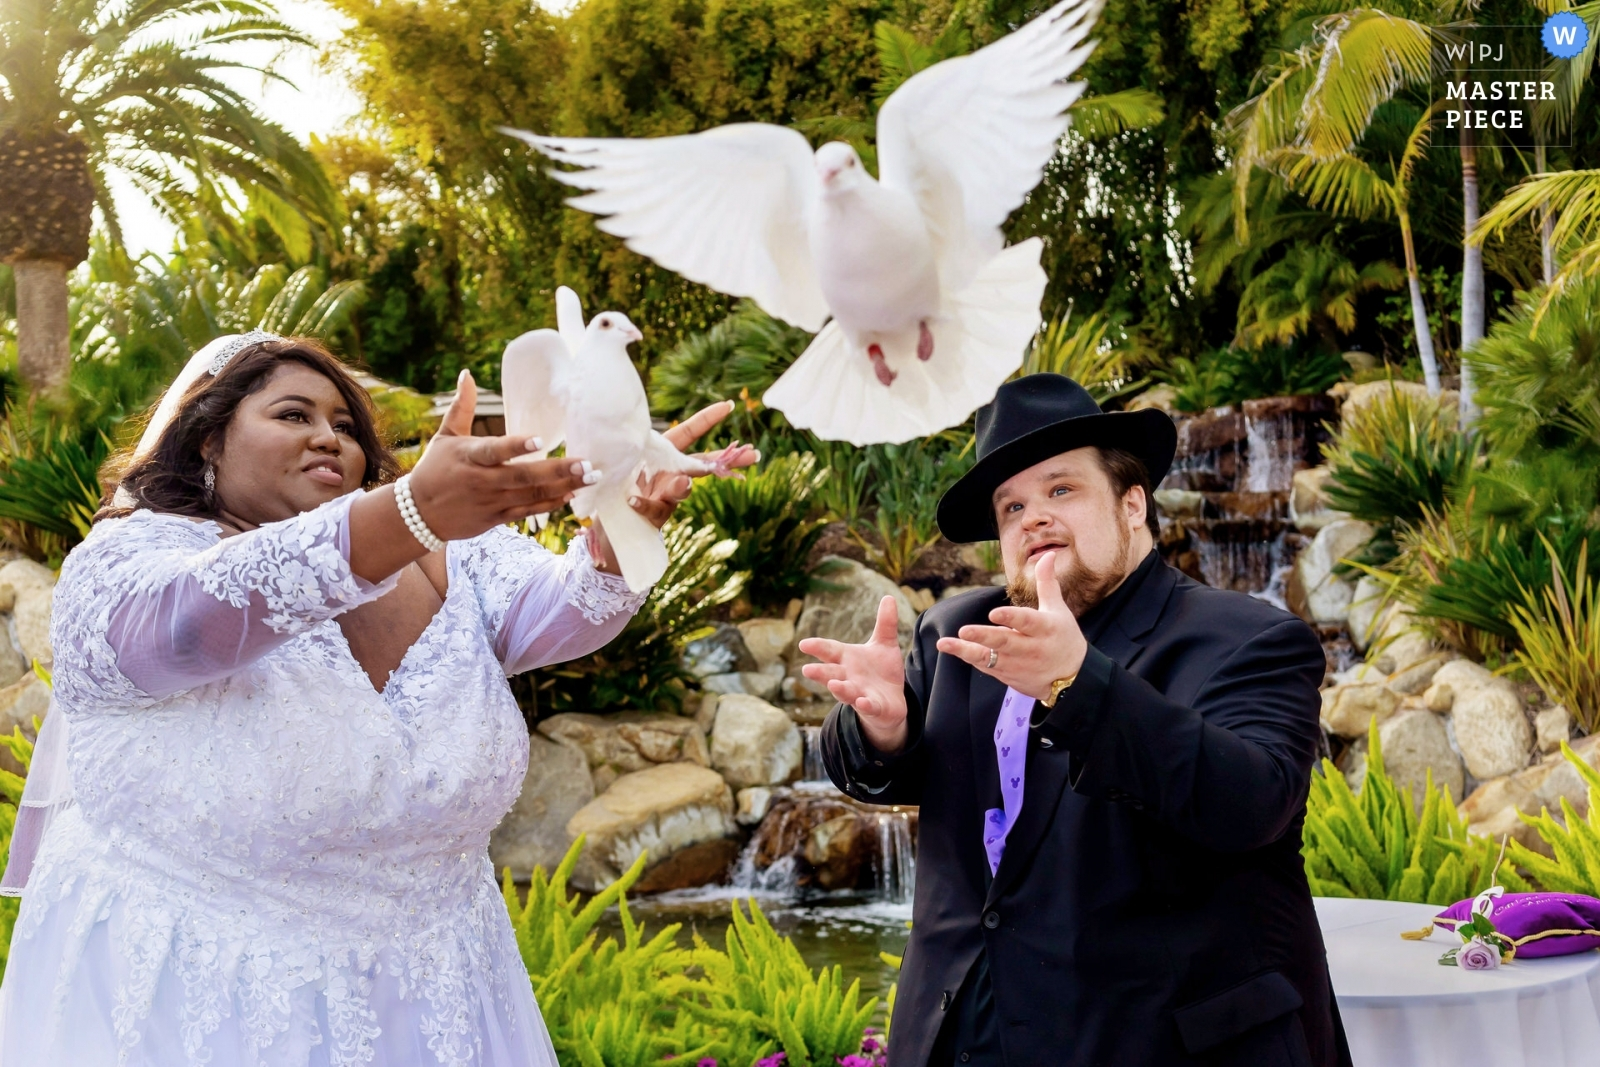 The bride and groom release doves during their wedding ceremony.  - San Diego, California - Southern Wedding Photography -  | Grand Tradition Estate and Gardens, Fallbrook, CA